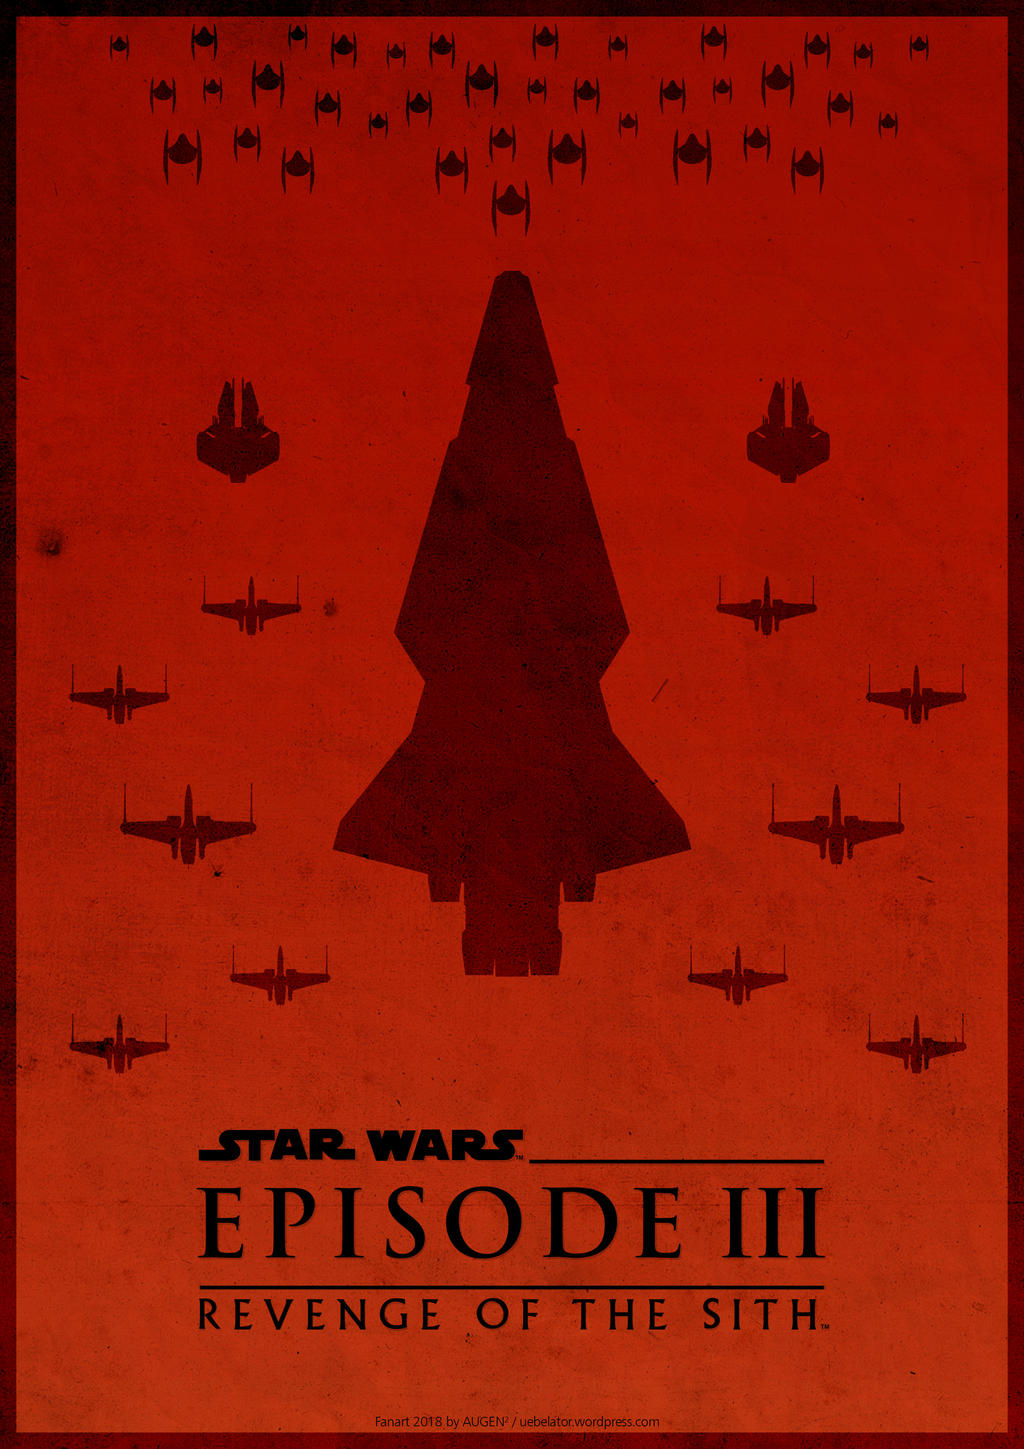 Star Wars Episode 3 Minimalist Fanart Poster By Uebelator On Deviantart